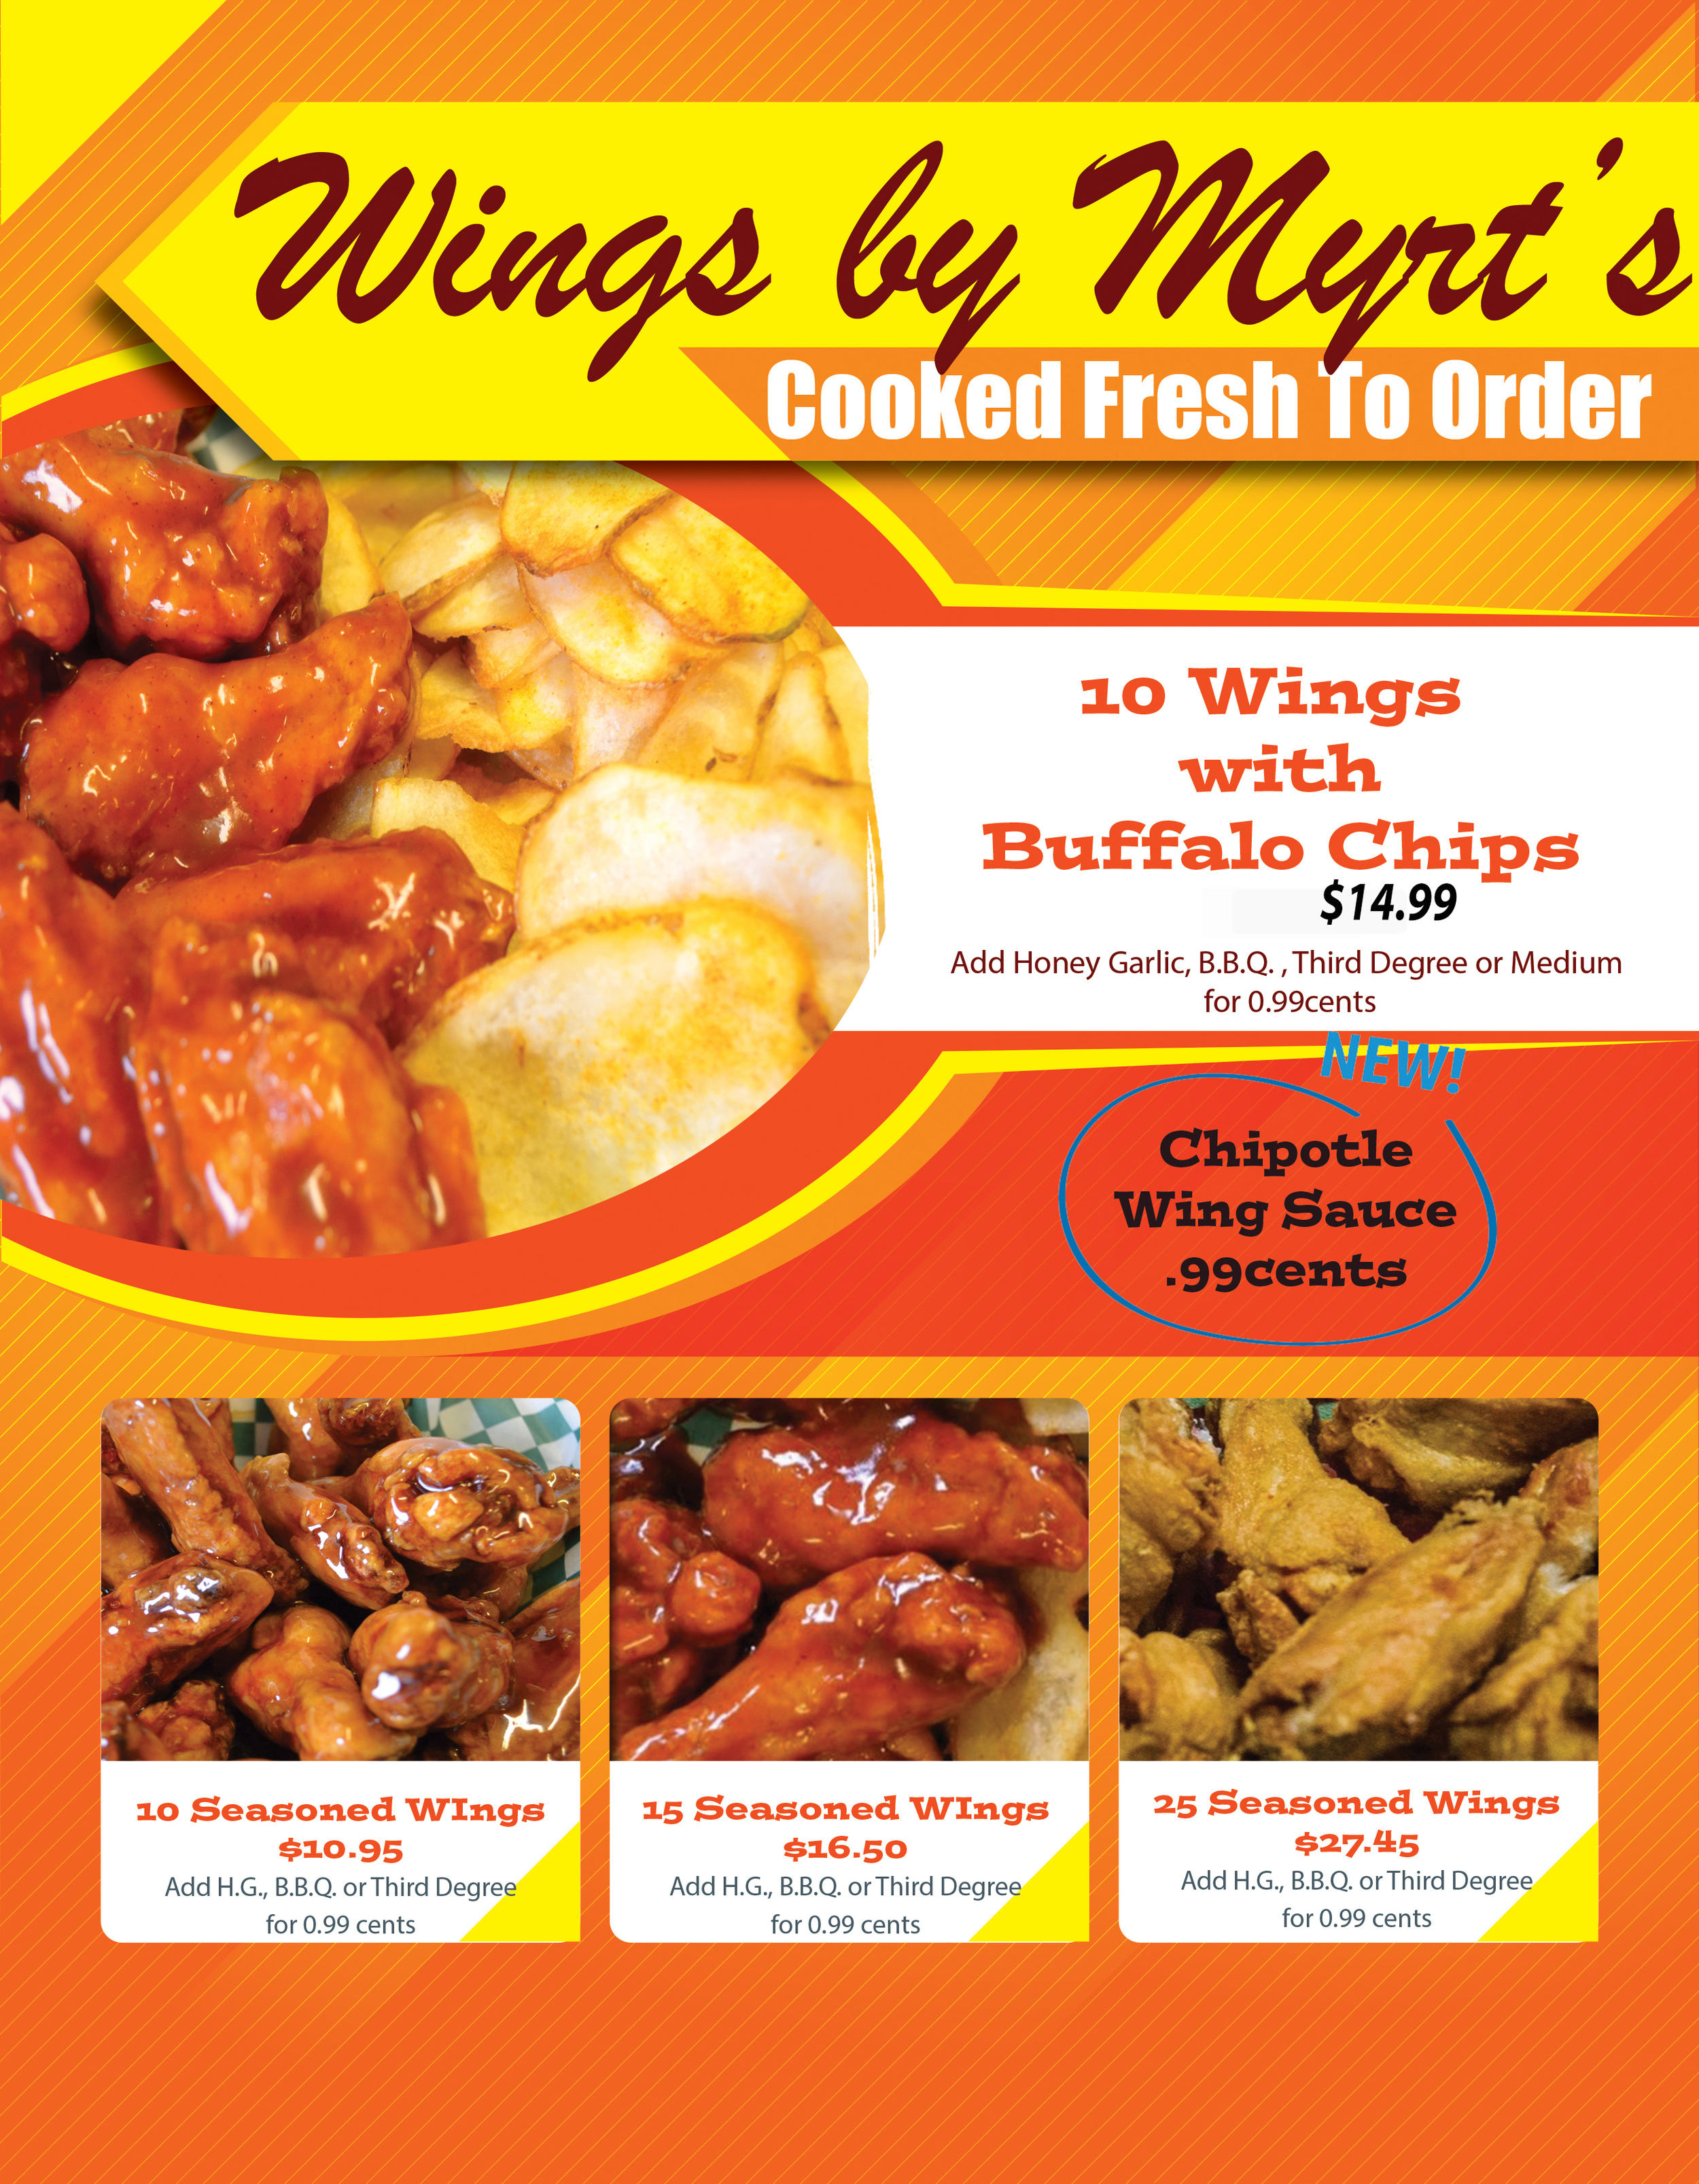 mattawa wings.jpg